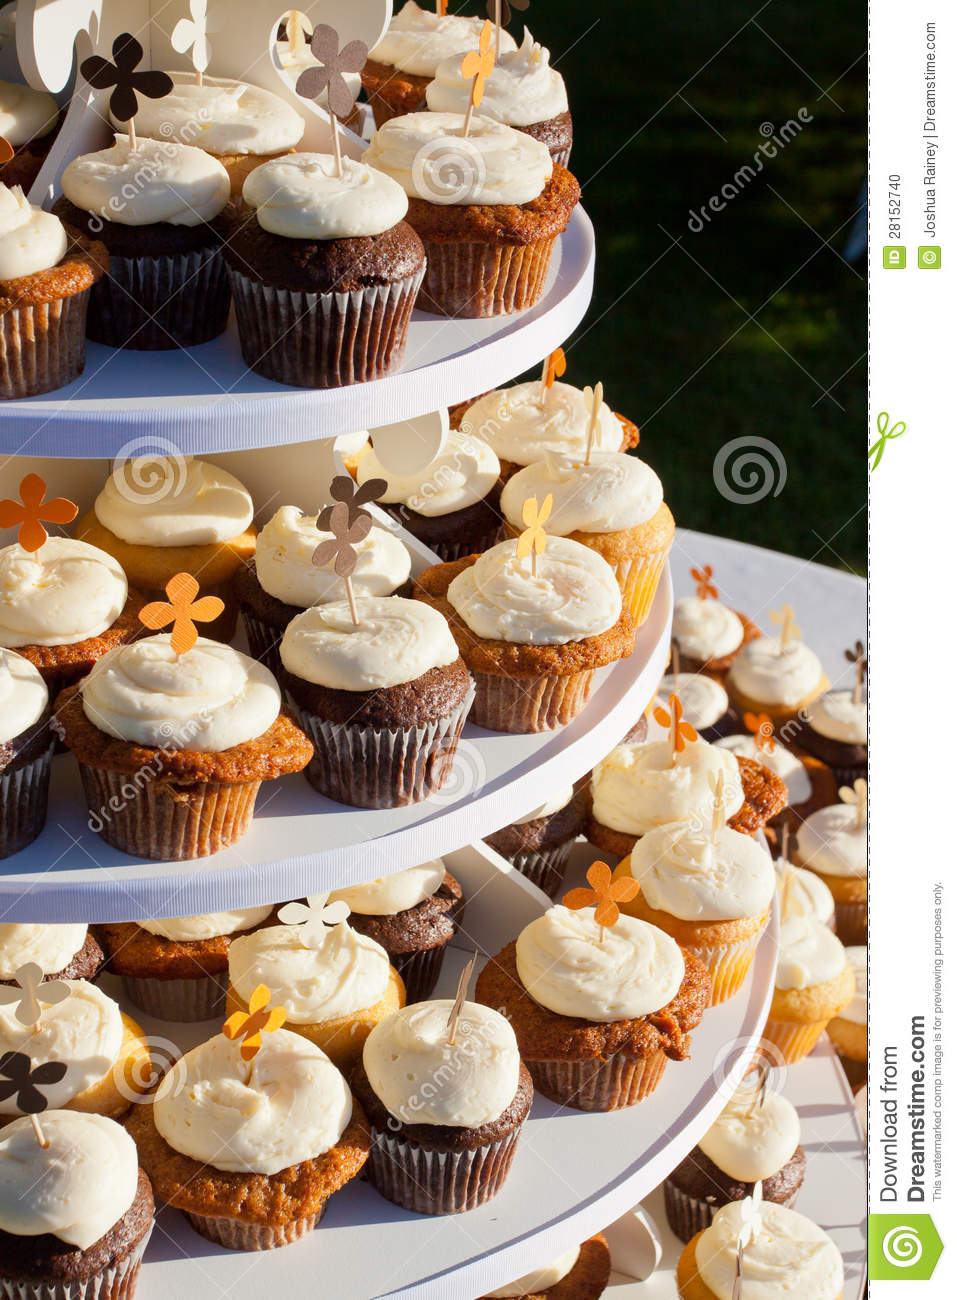 Carrot Cake Cupcakes stock photo. Image of sweets, frosting - 28152740